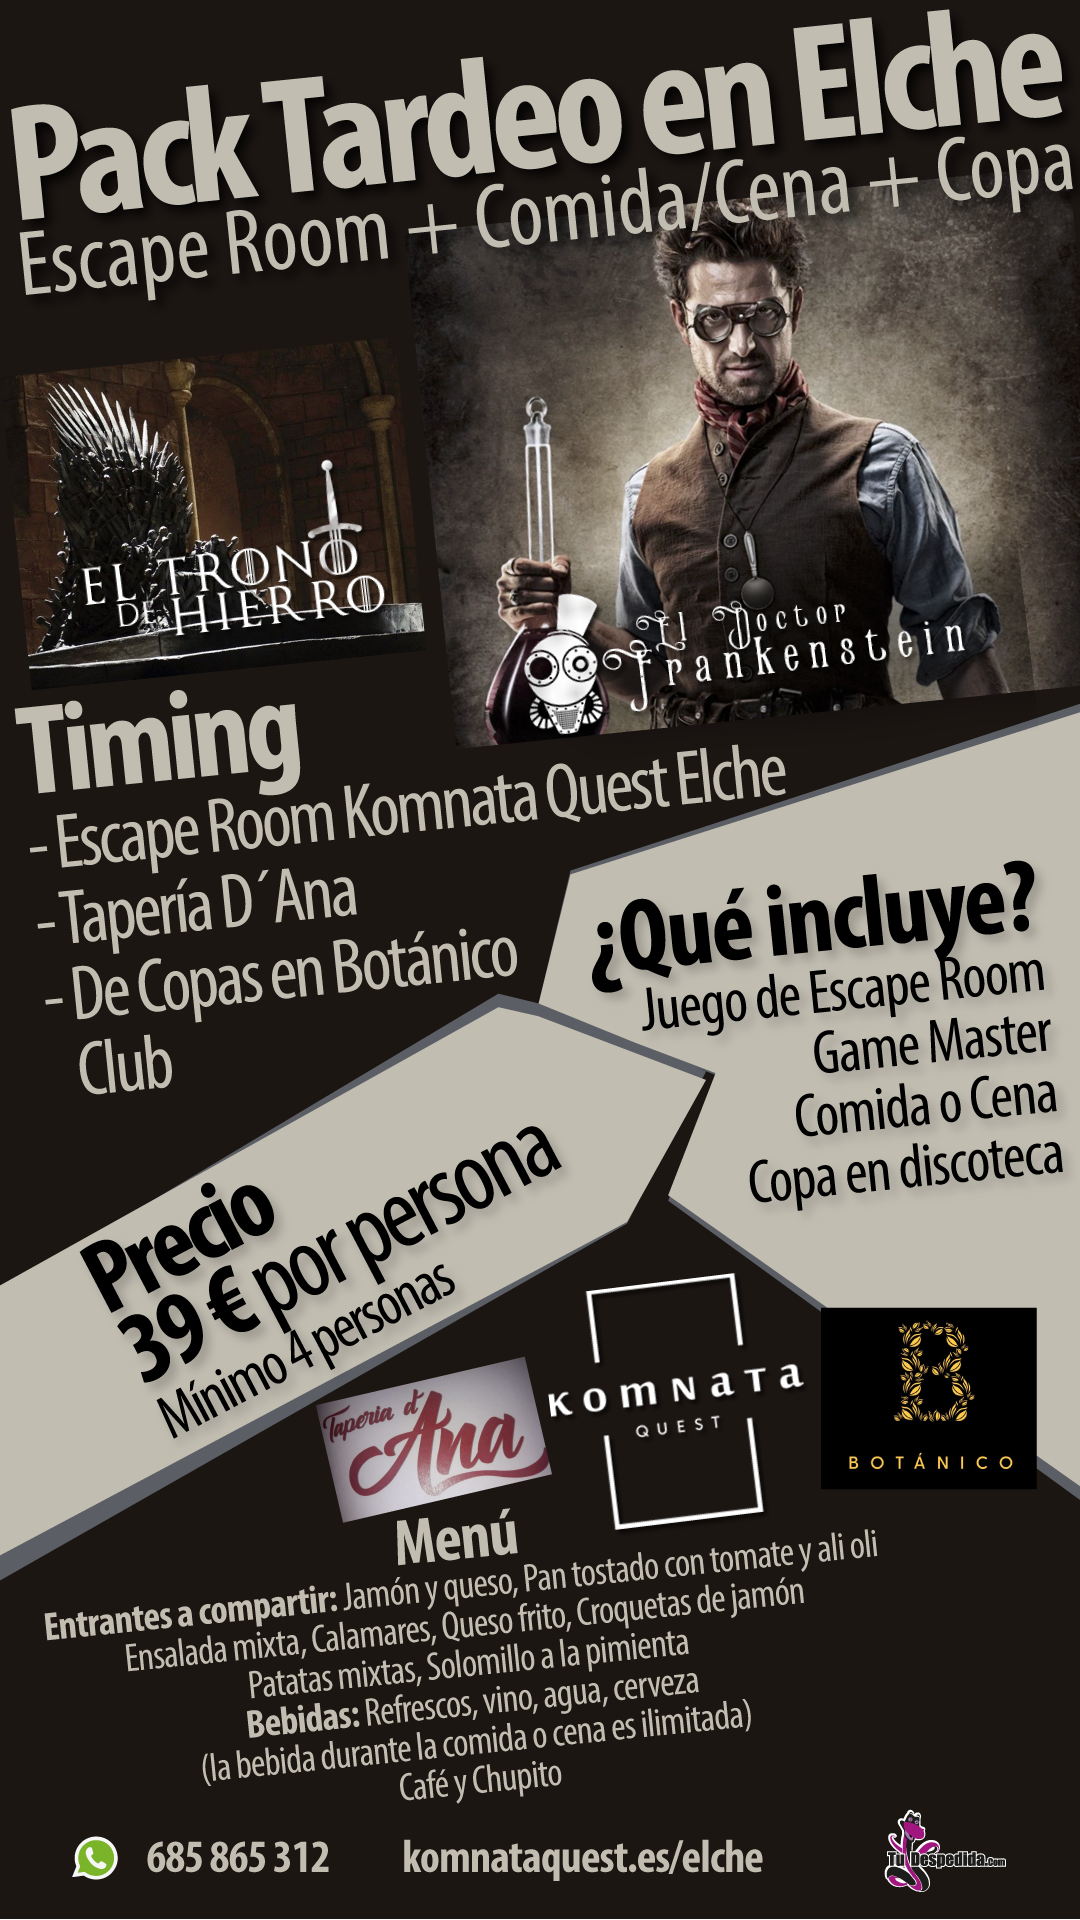 Escape Room Elche